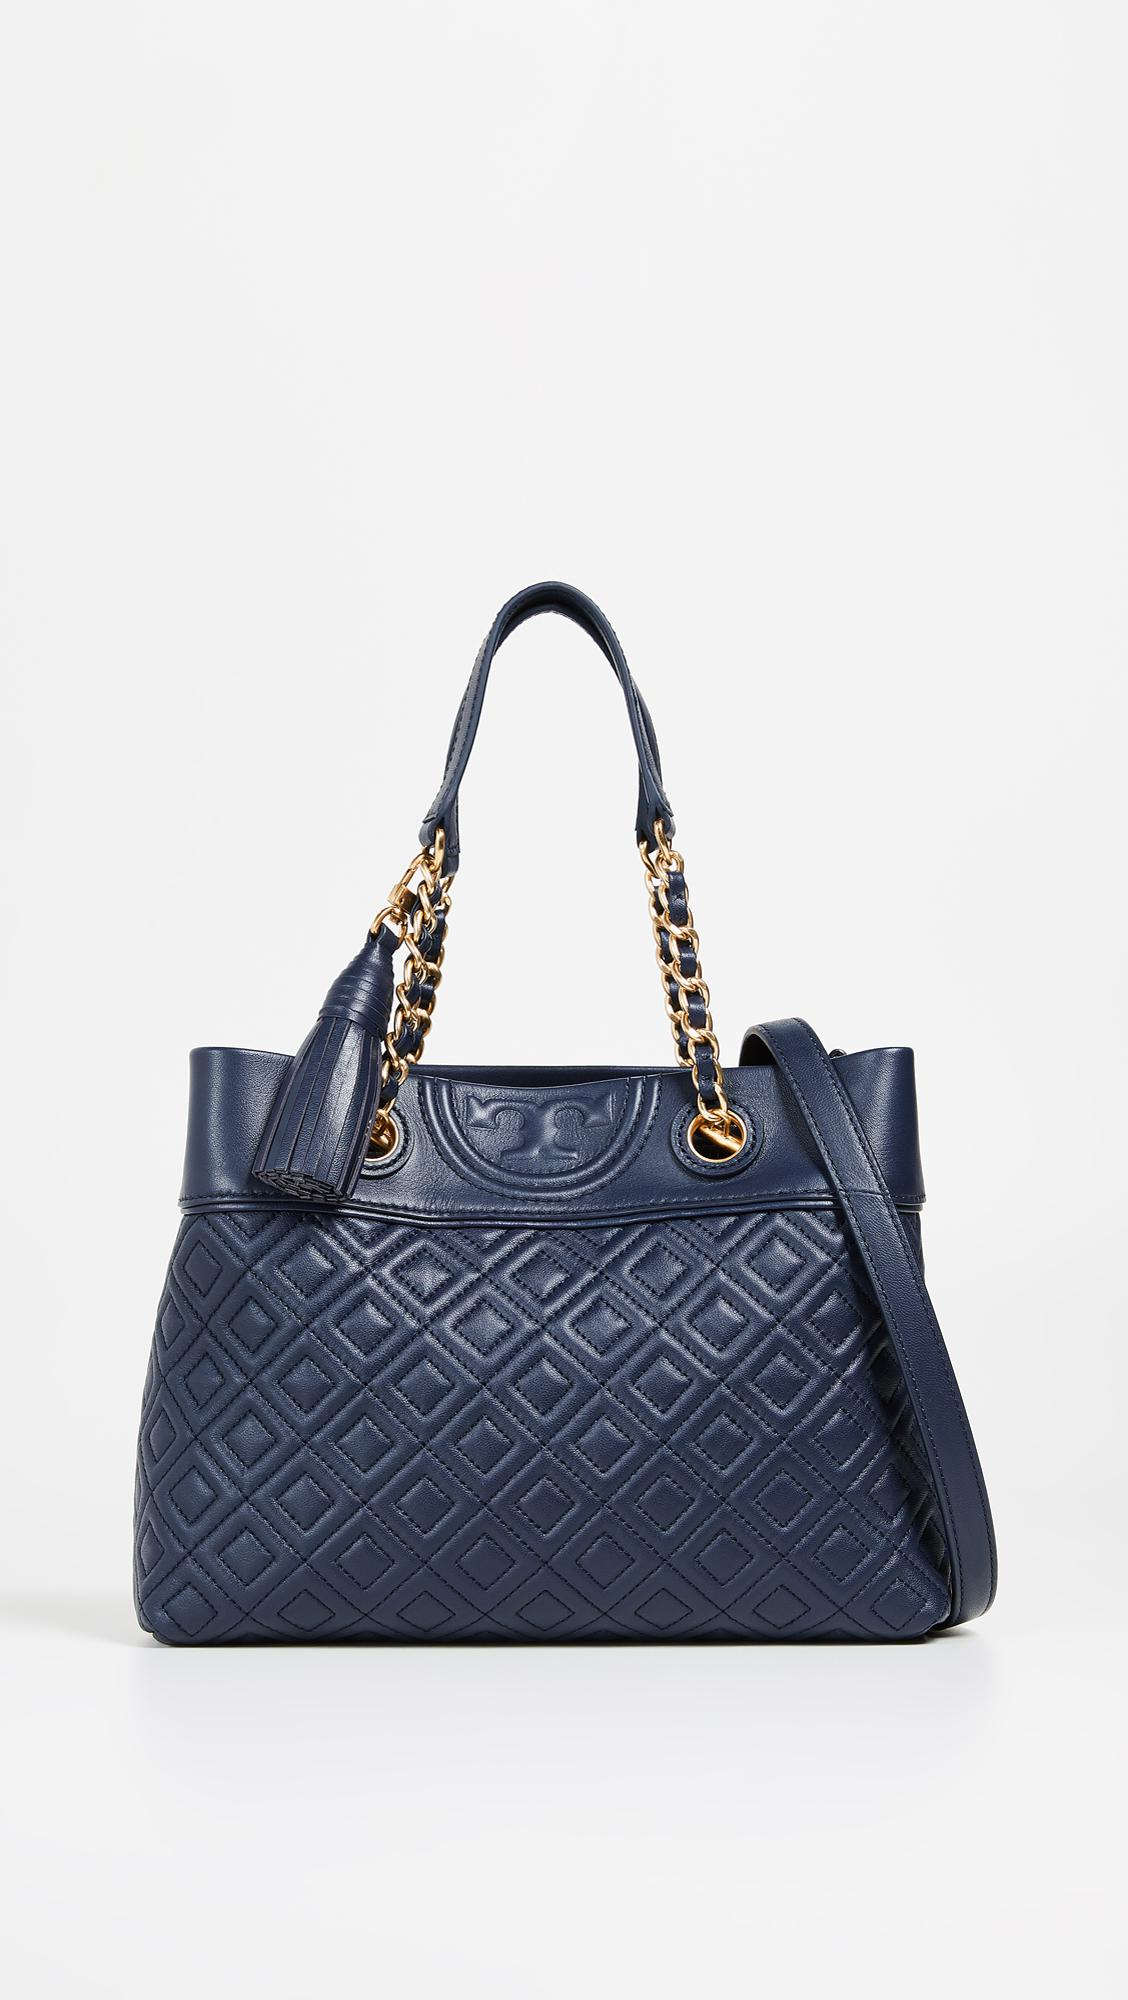 23bc803c647f Lyst - Tory Burch Fleming Small Tote Bag in Blue